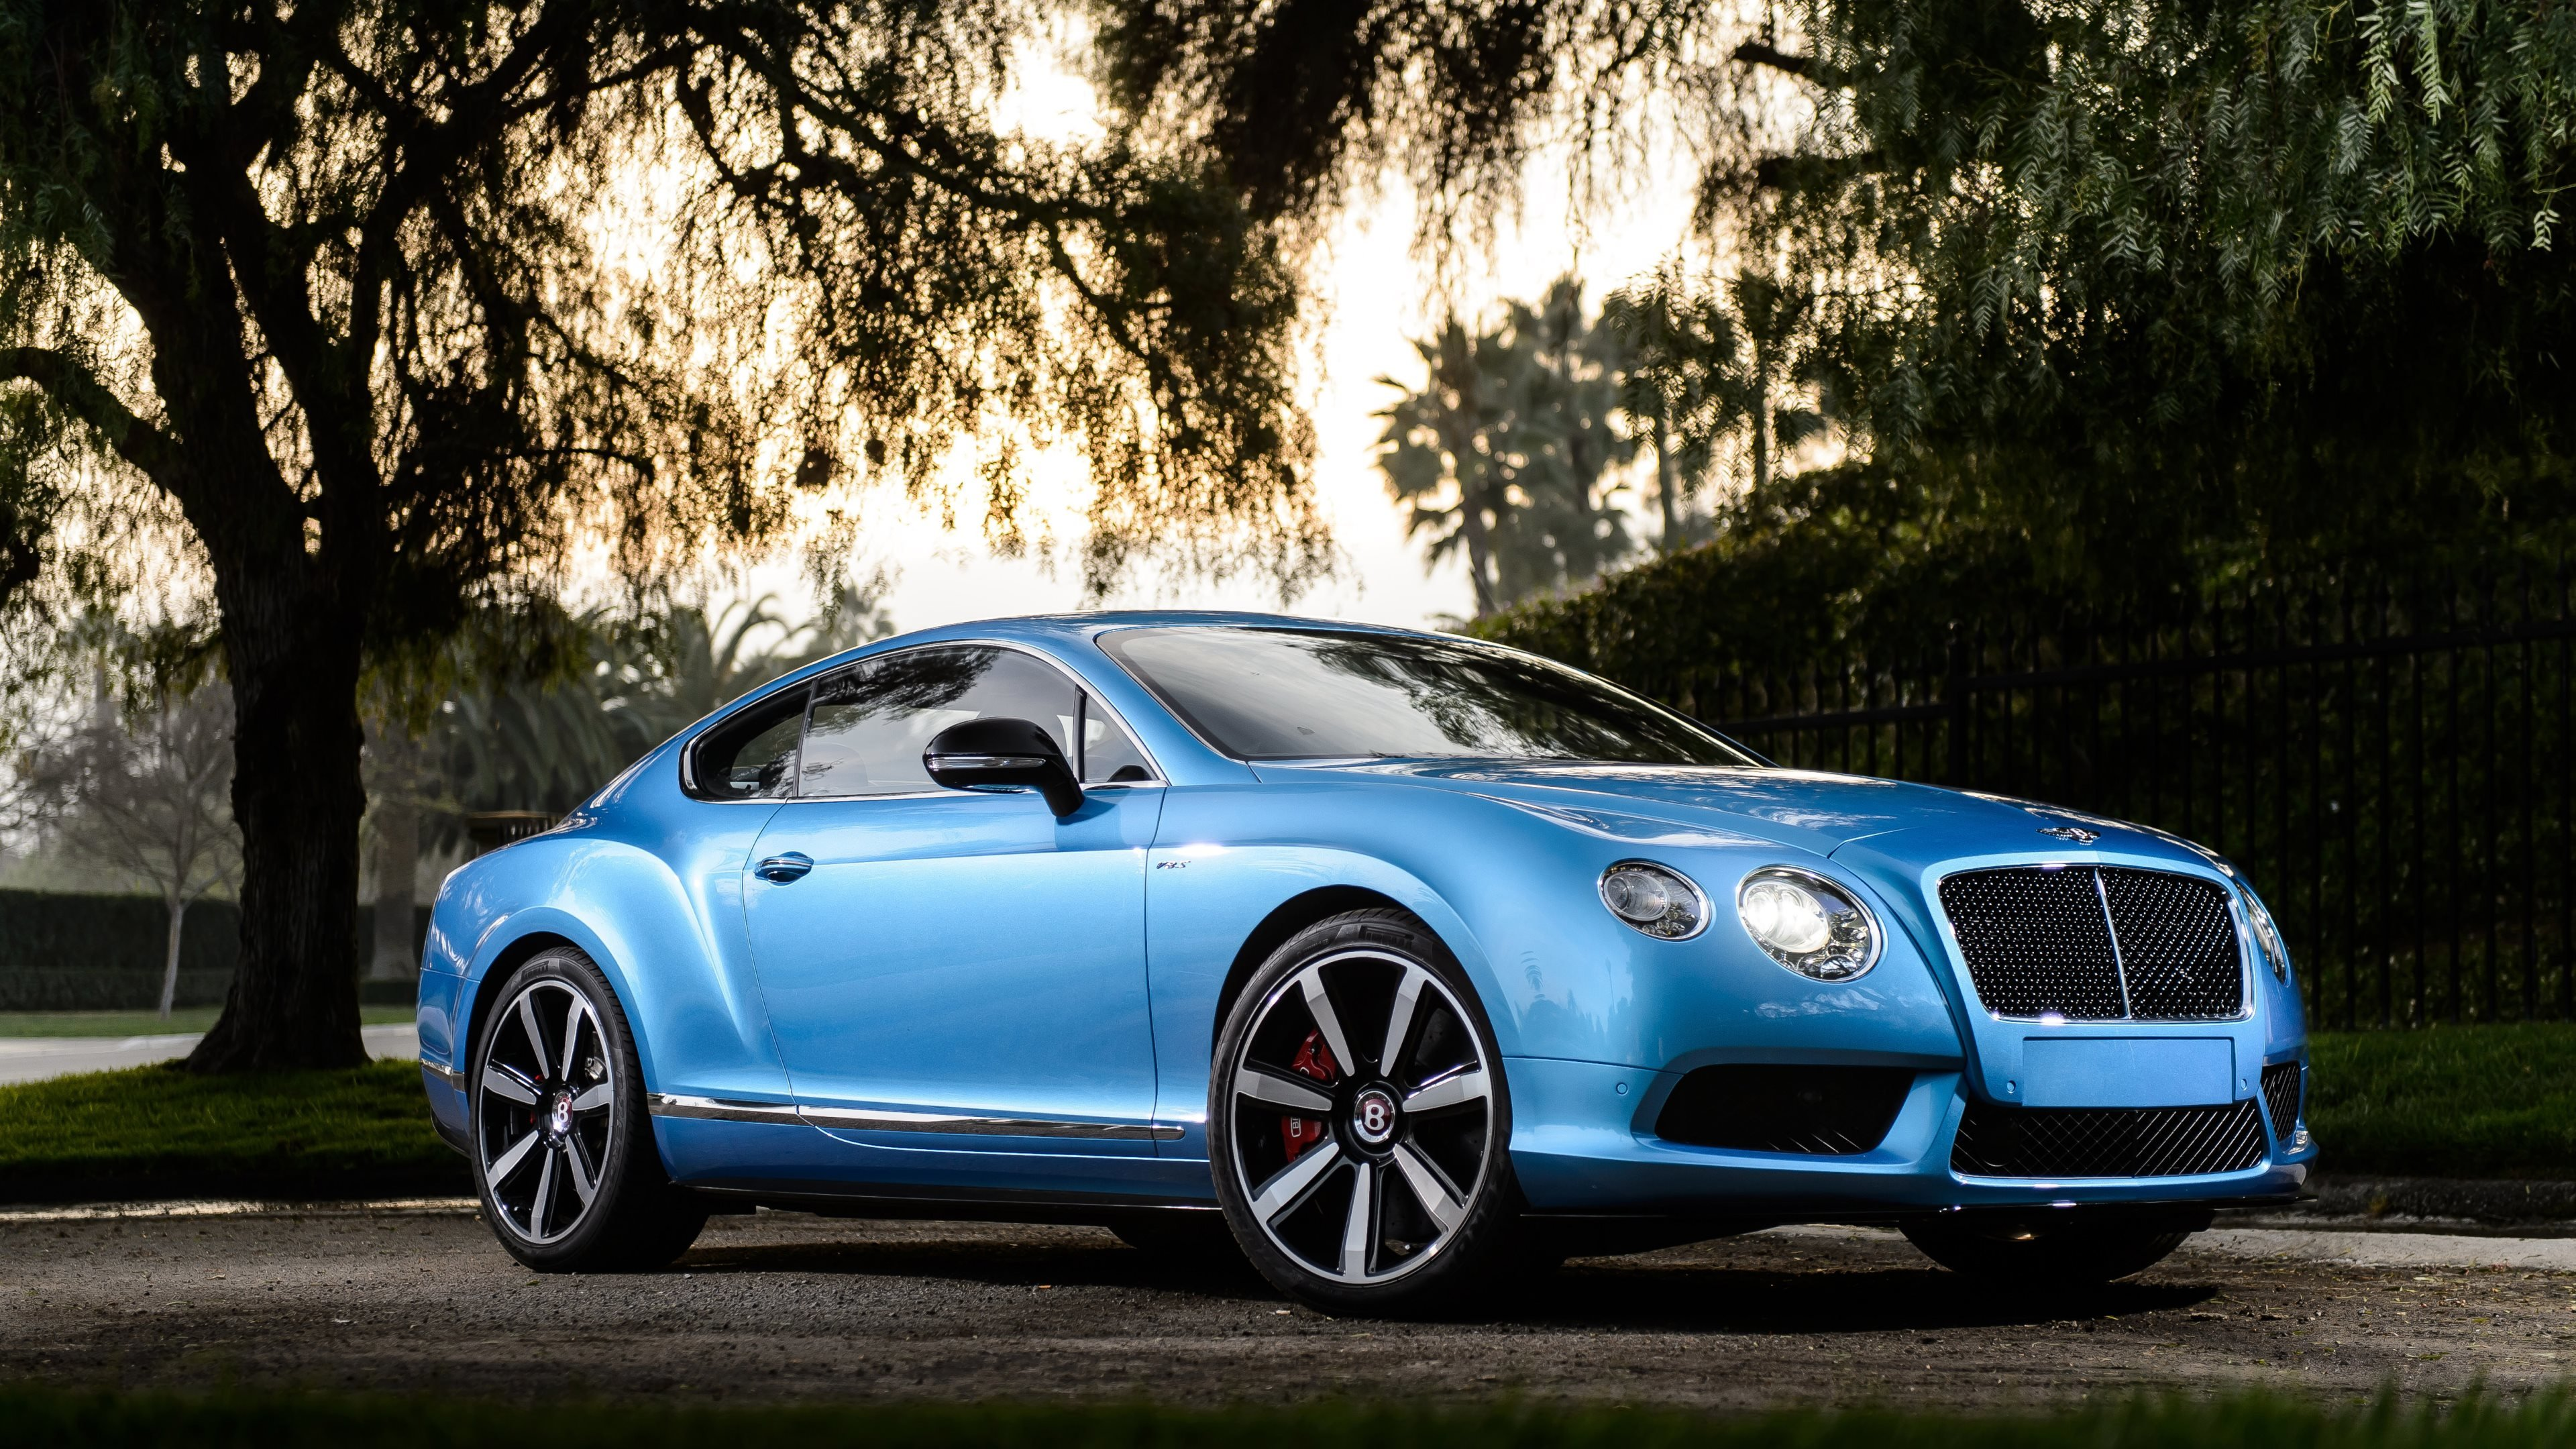 Latest Bentley Cars 2014 Hd Wallpapers · 4K Free Download